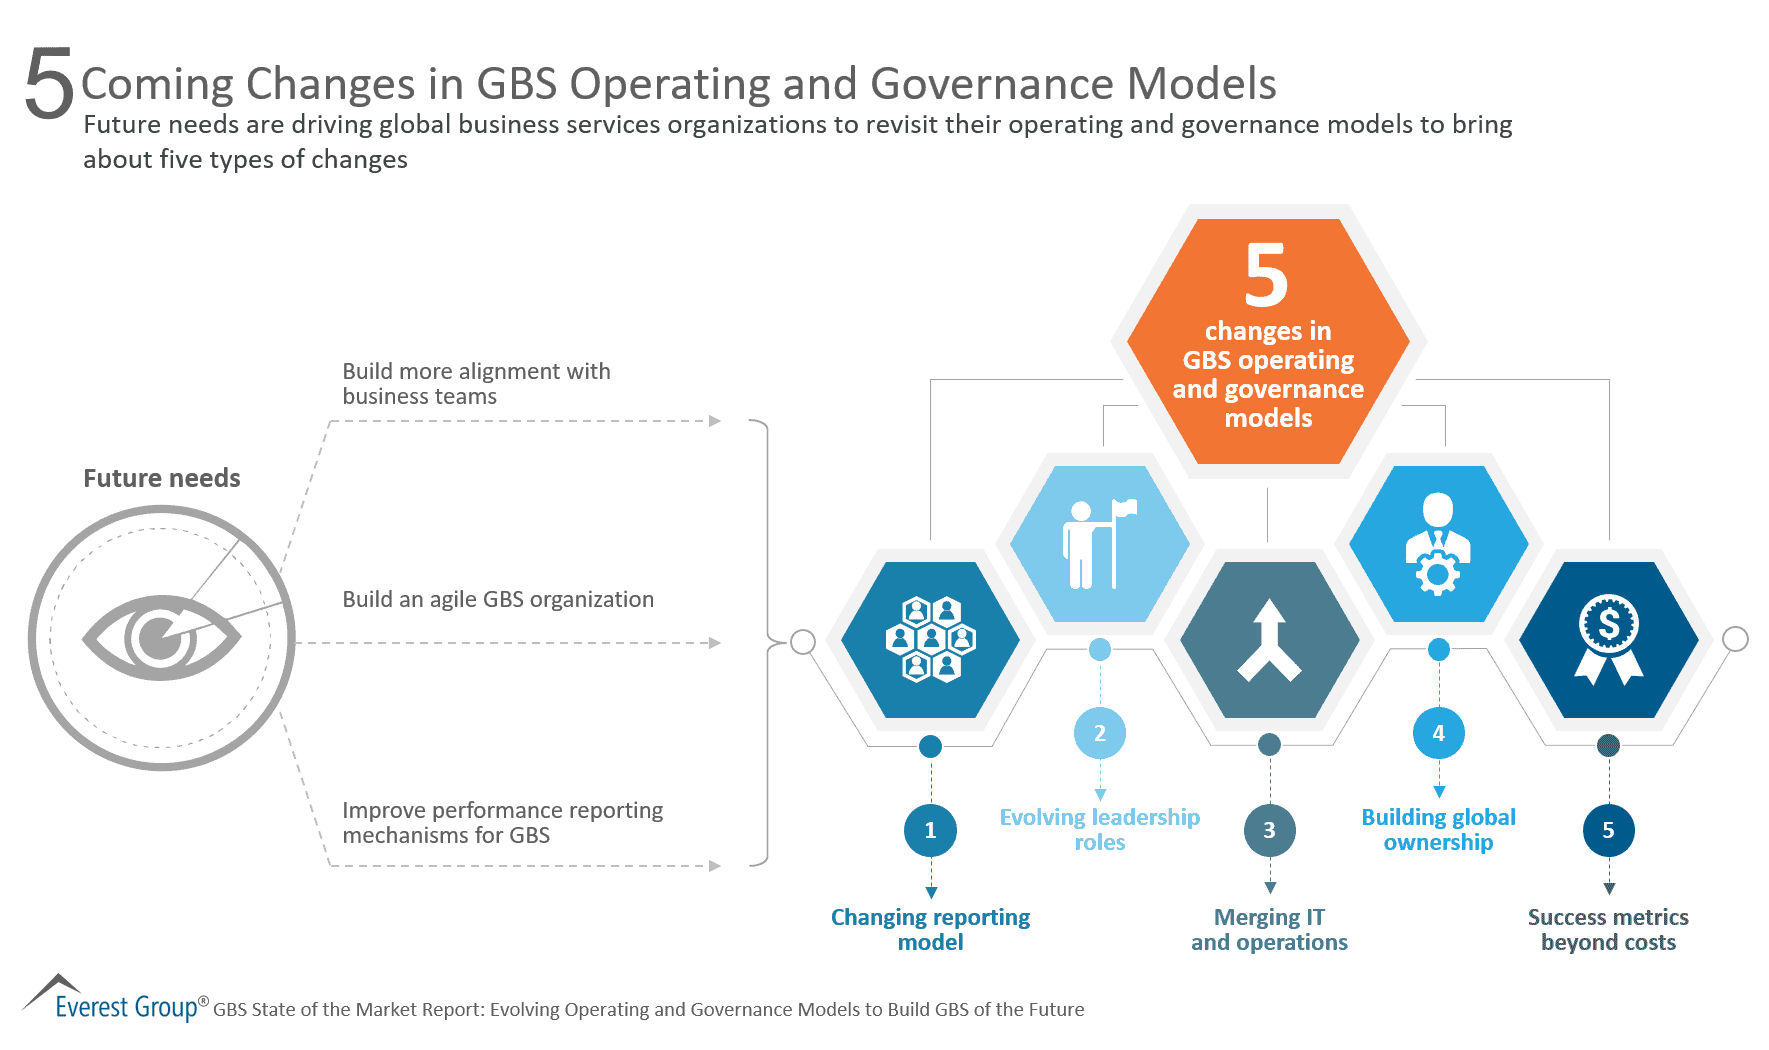 5 Coming Changes in GBS Operating and Governance Models